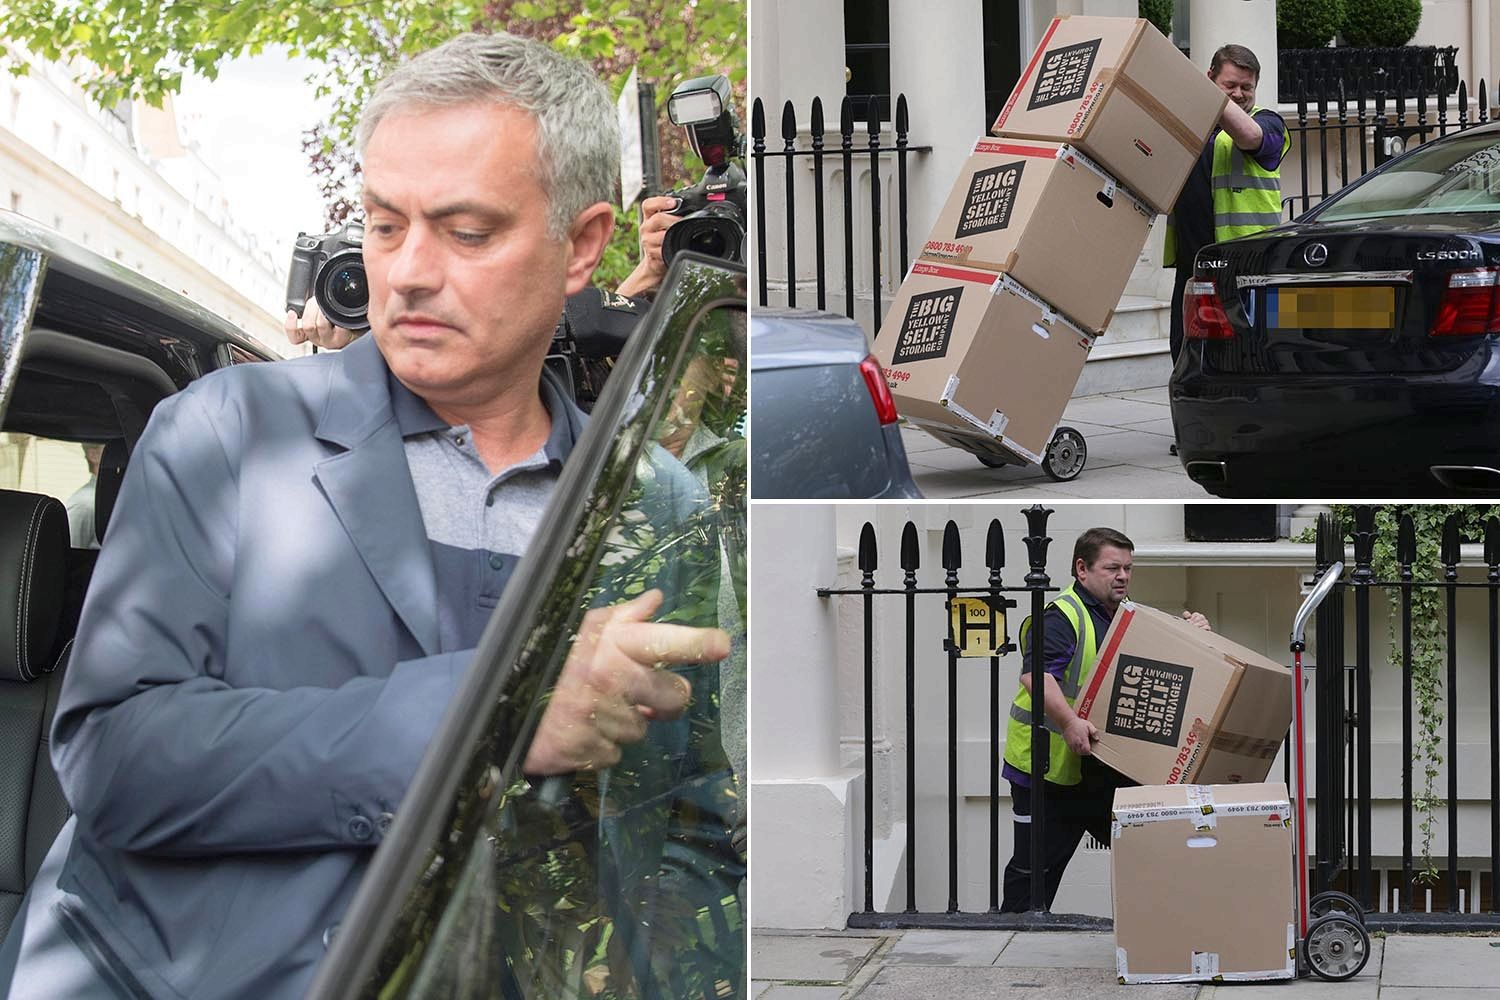 MOURINHO TIGHT LIPPED OVER MAN UNITED JOB AS HE LEAVES HIS LONDON HOME